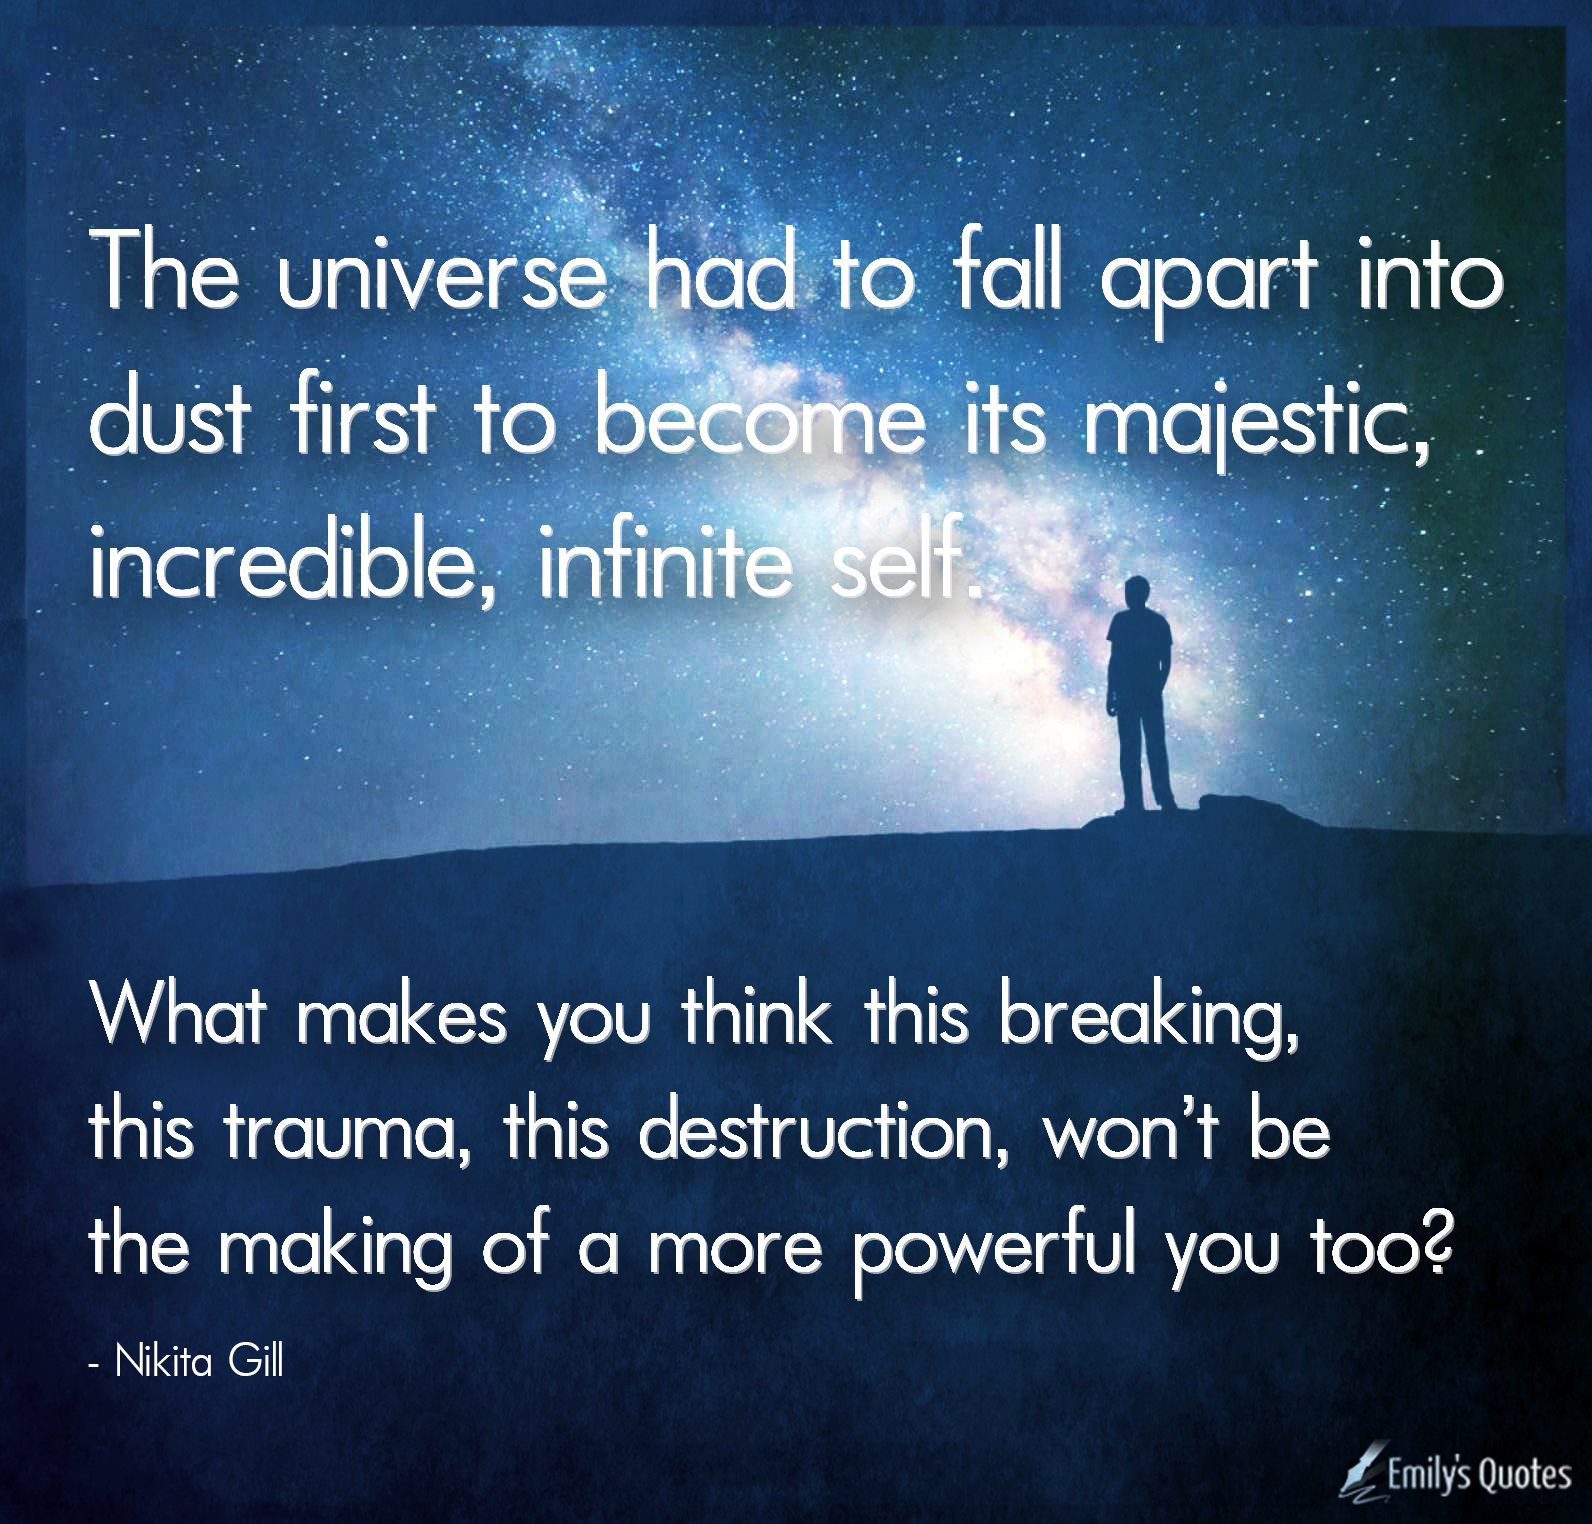 The Universe Had To Fall Apart Into Dust First To Become